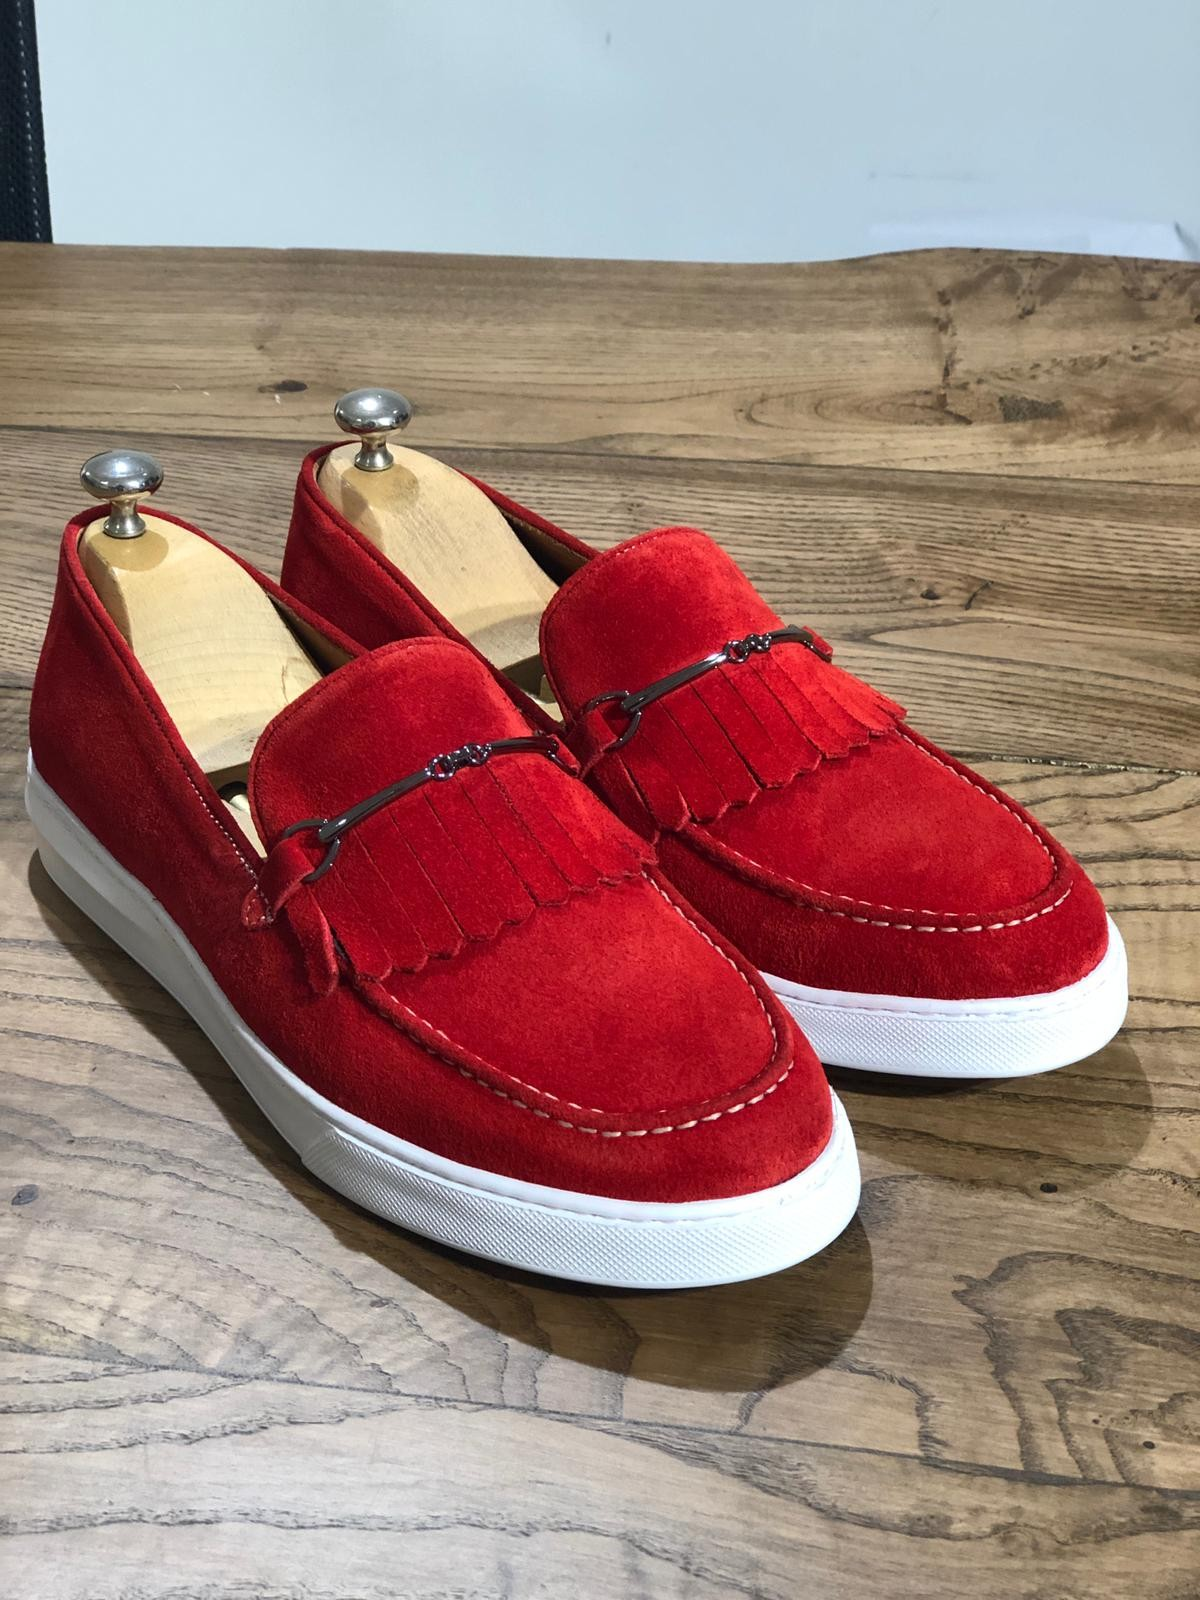 Red Suede Kilt Espadrille Loafer by Gentwith.com with Free Shipping a5ff3d3e3f08